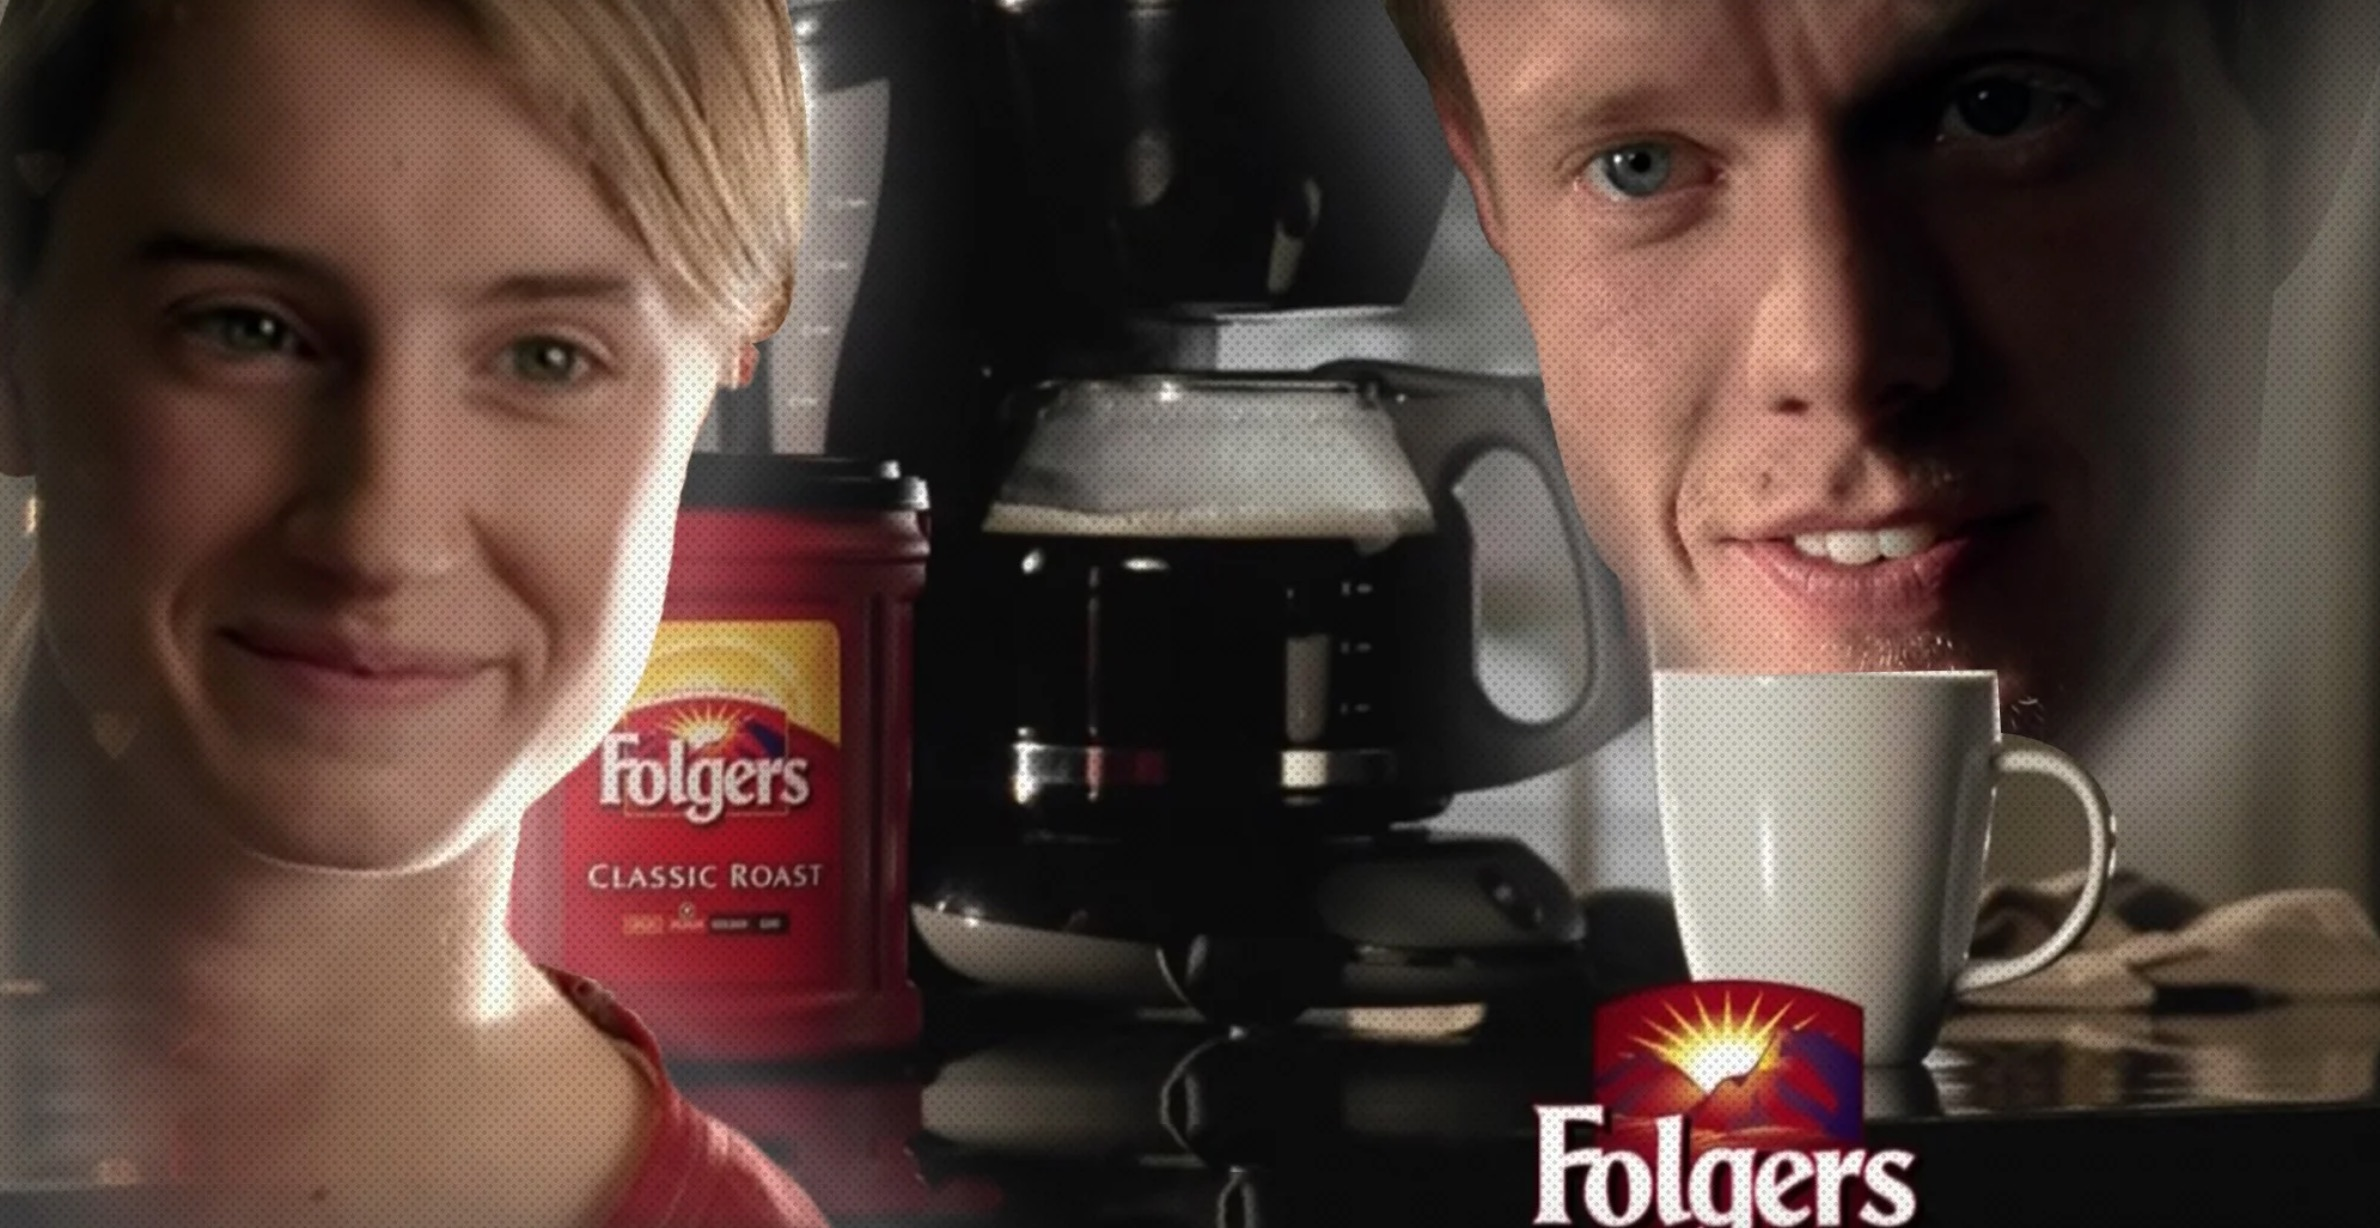 'You're My Present This Year': An Oral History Of The Folgers Incest Ad